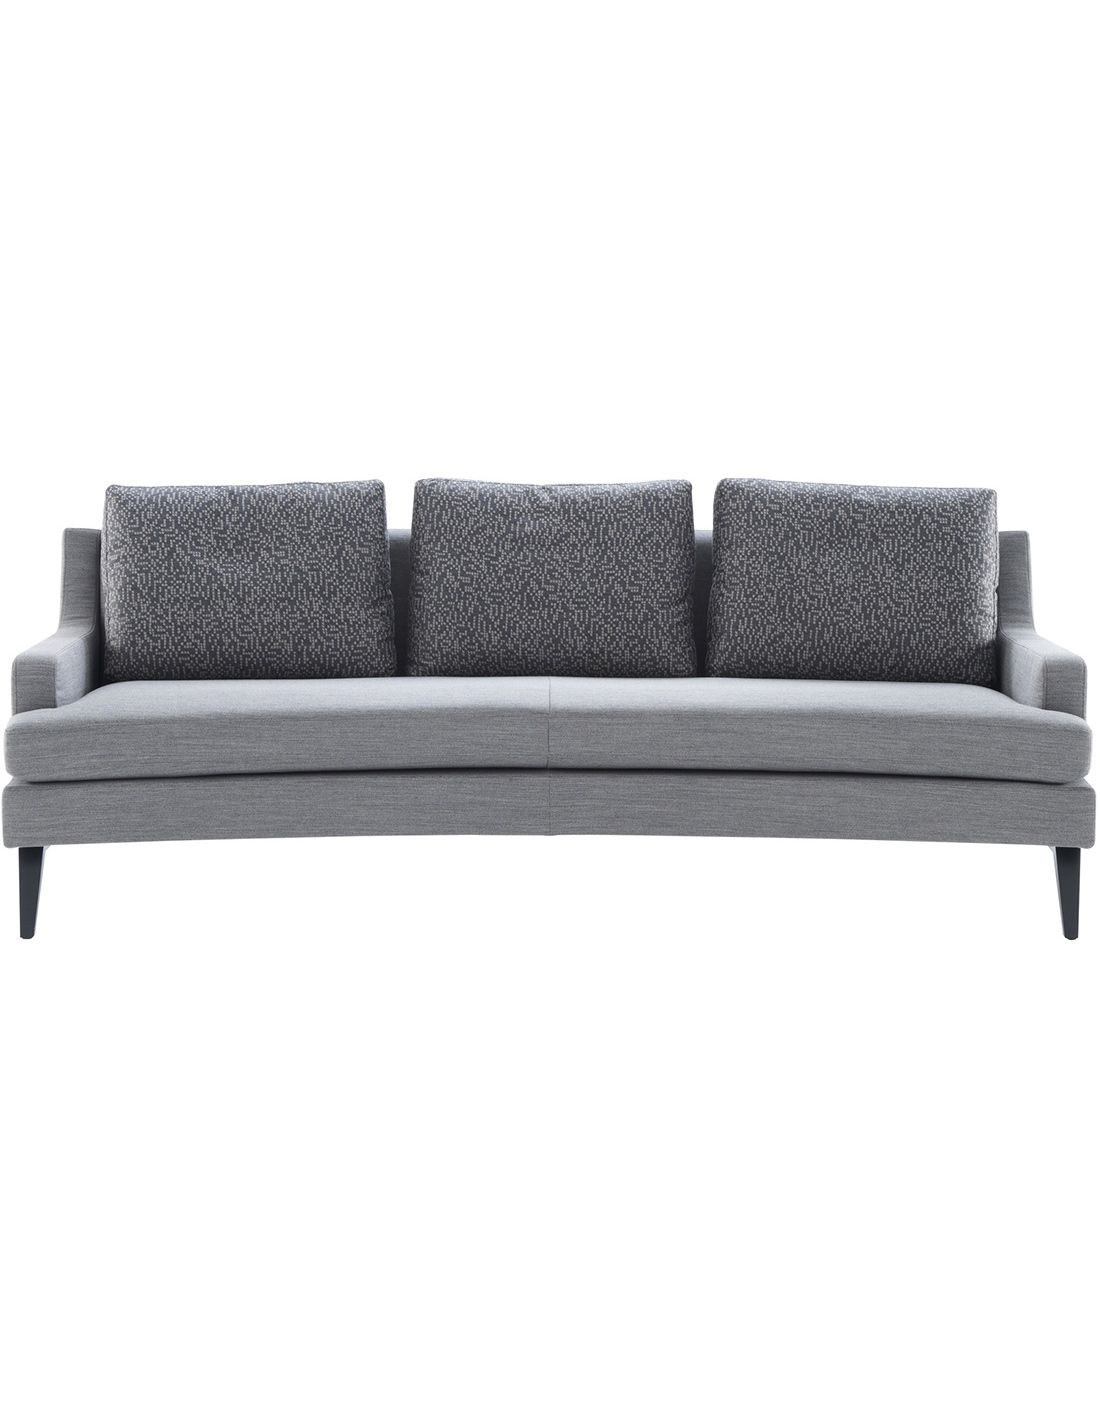 Belem Sofa designed by Didier Gomez for Ligne Roset ...